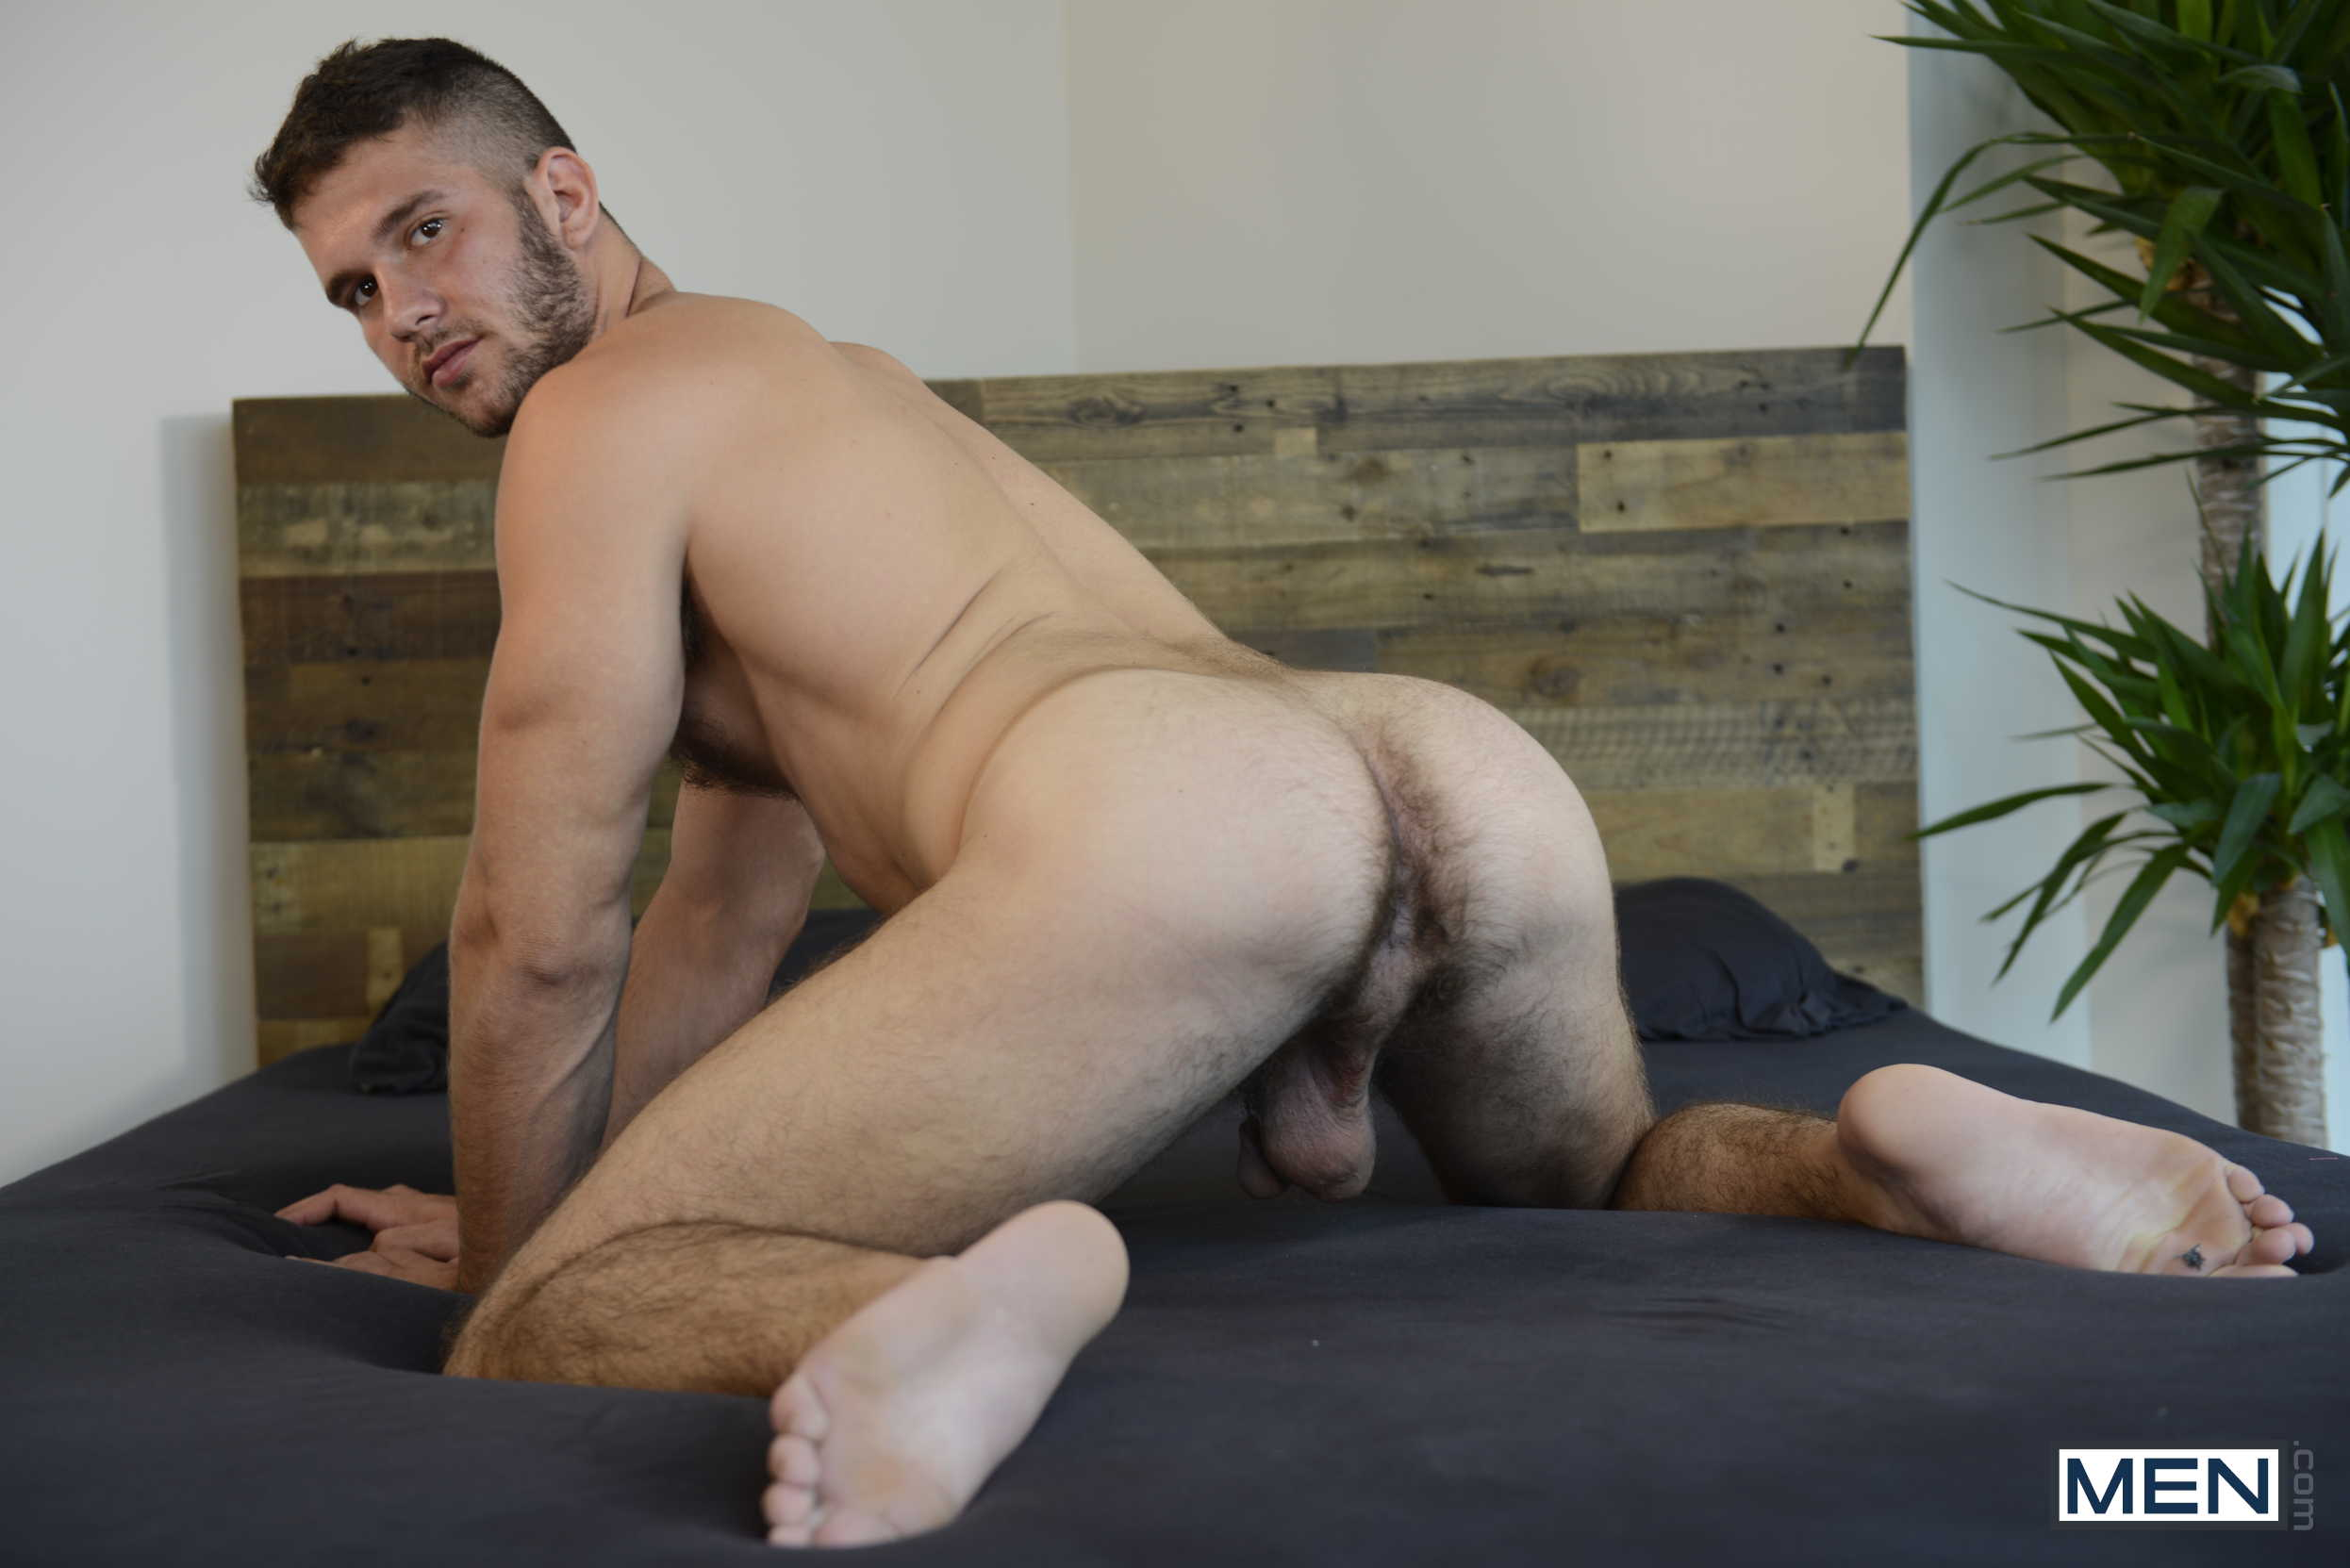 Men solo gay sex spanked amp 2